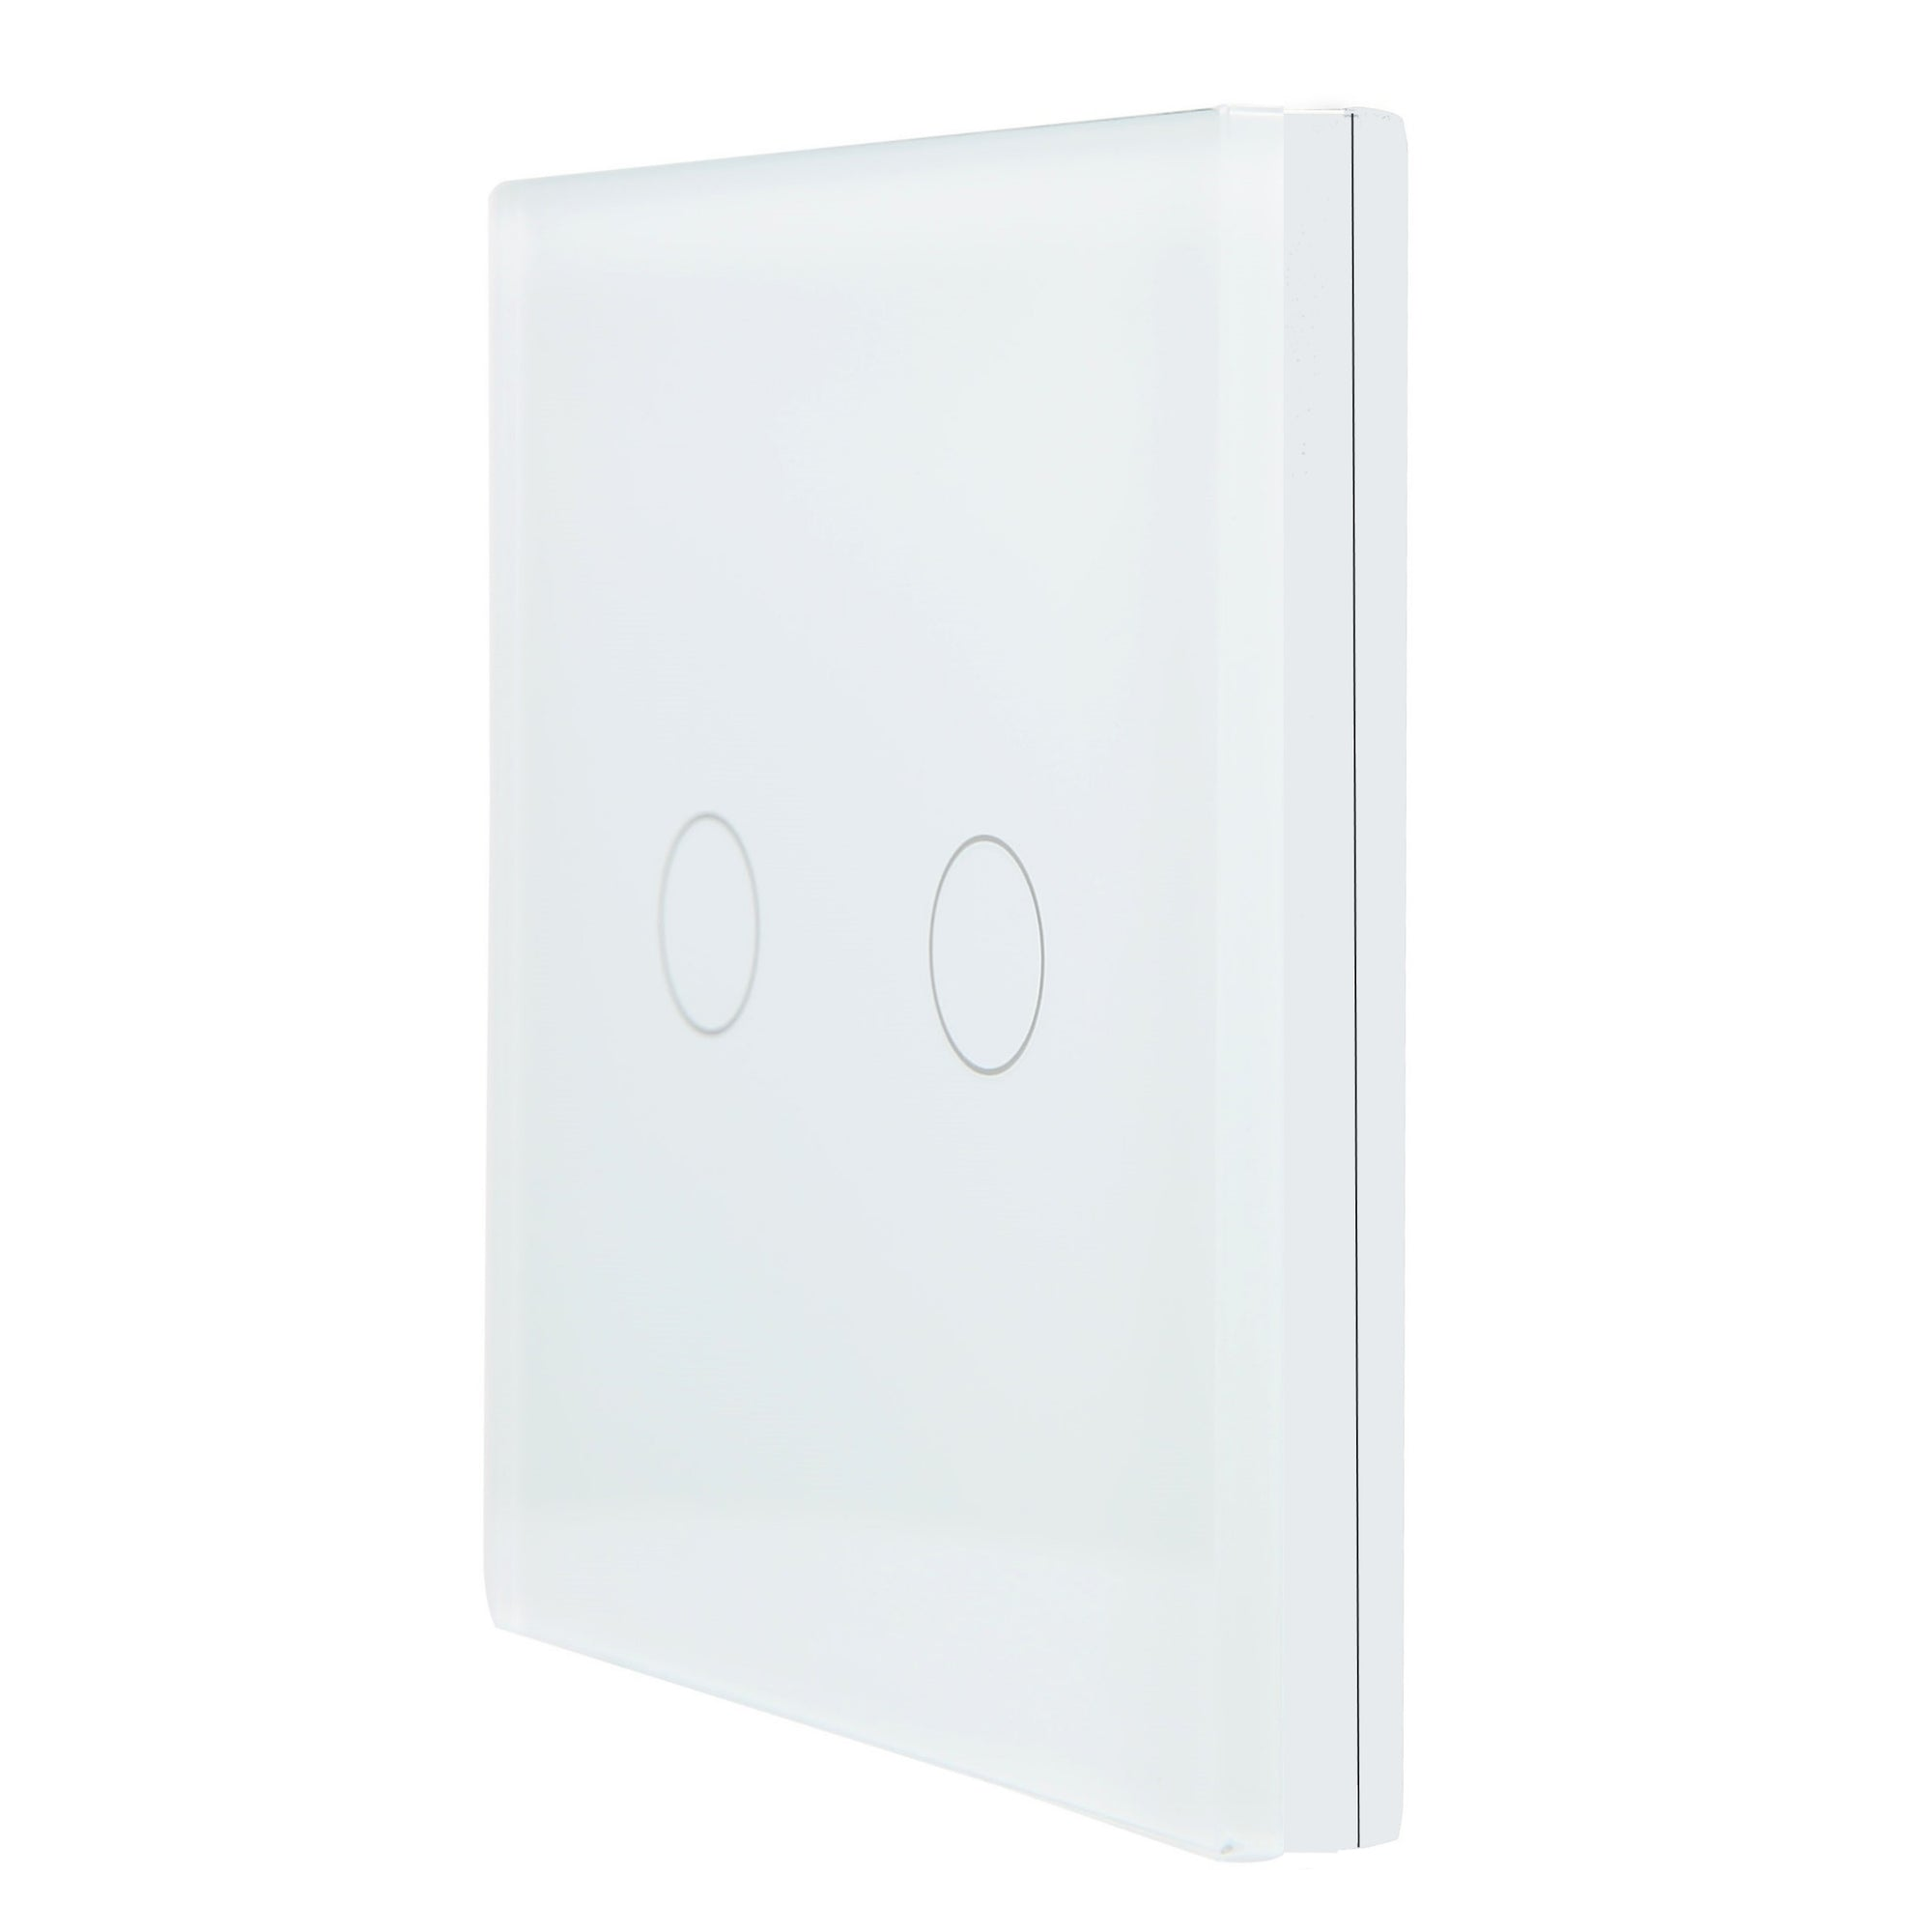 White Glass Wall Remote Control Panel 2 Gang for RF-2Way (DC)